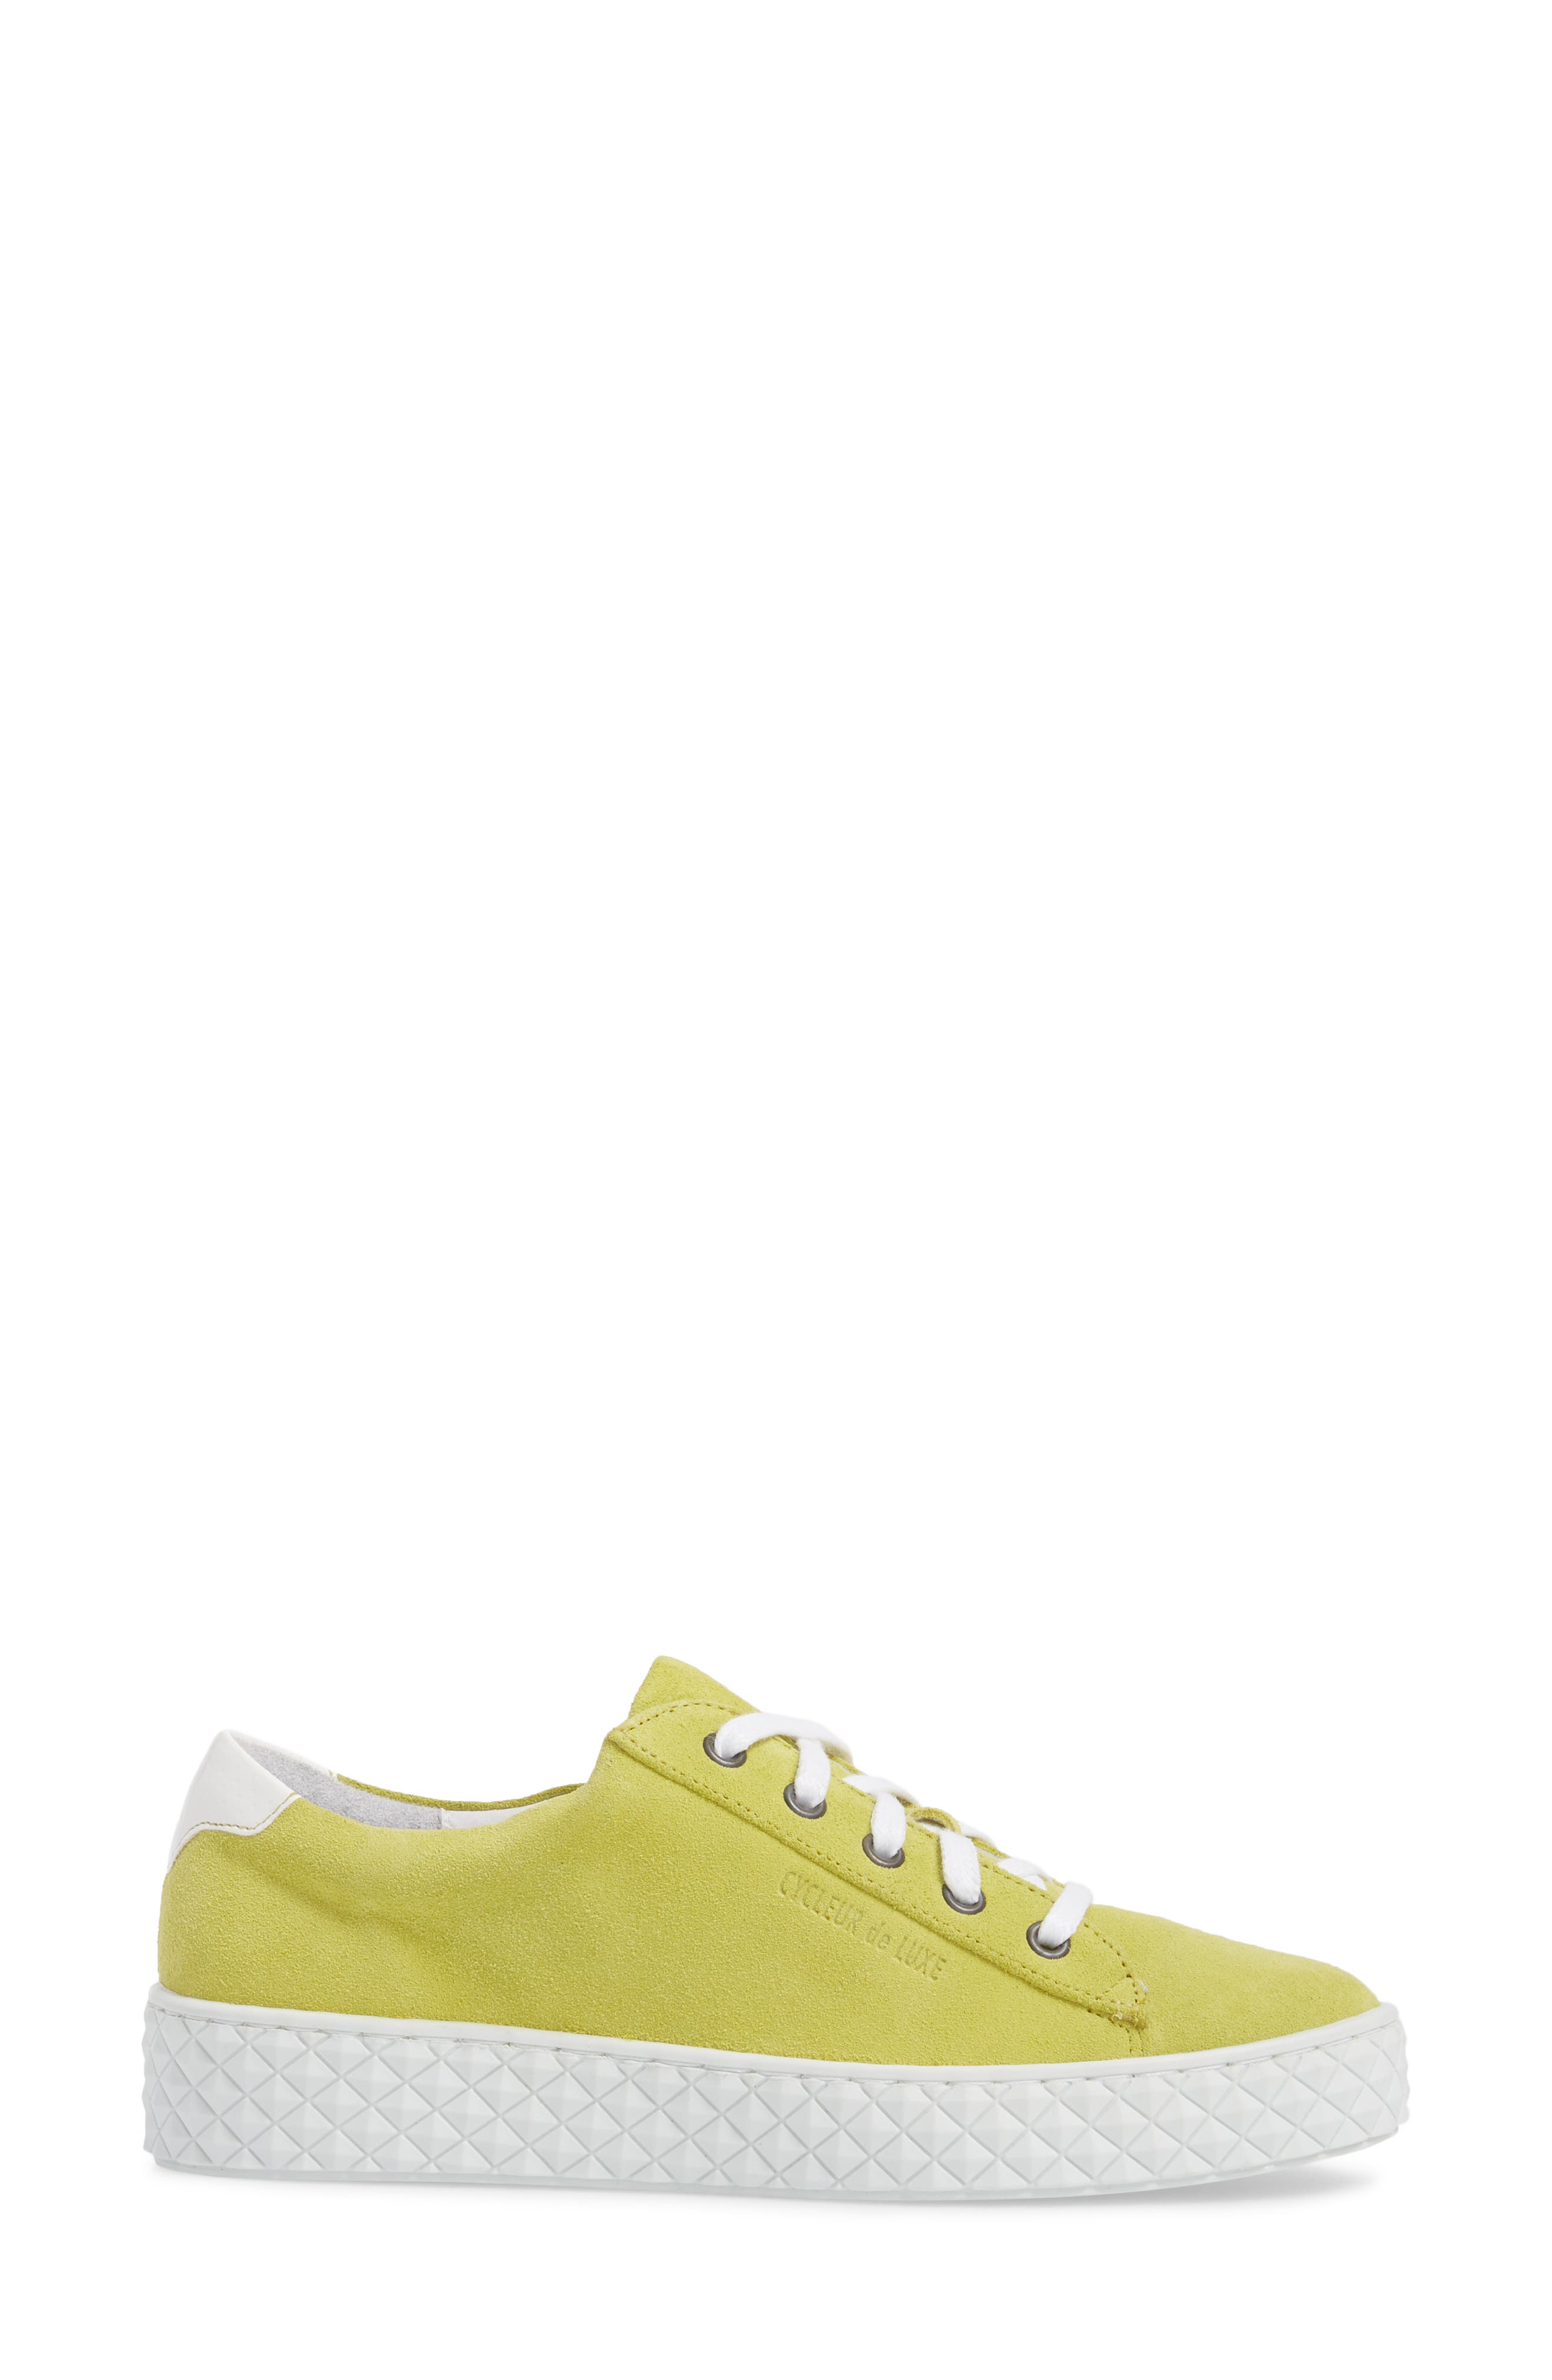 Albufeira Sneaker,                             Alternate thumbnail 3, color,                             Lime/ Optic White Suede